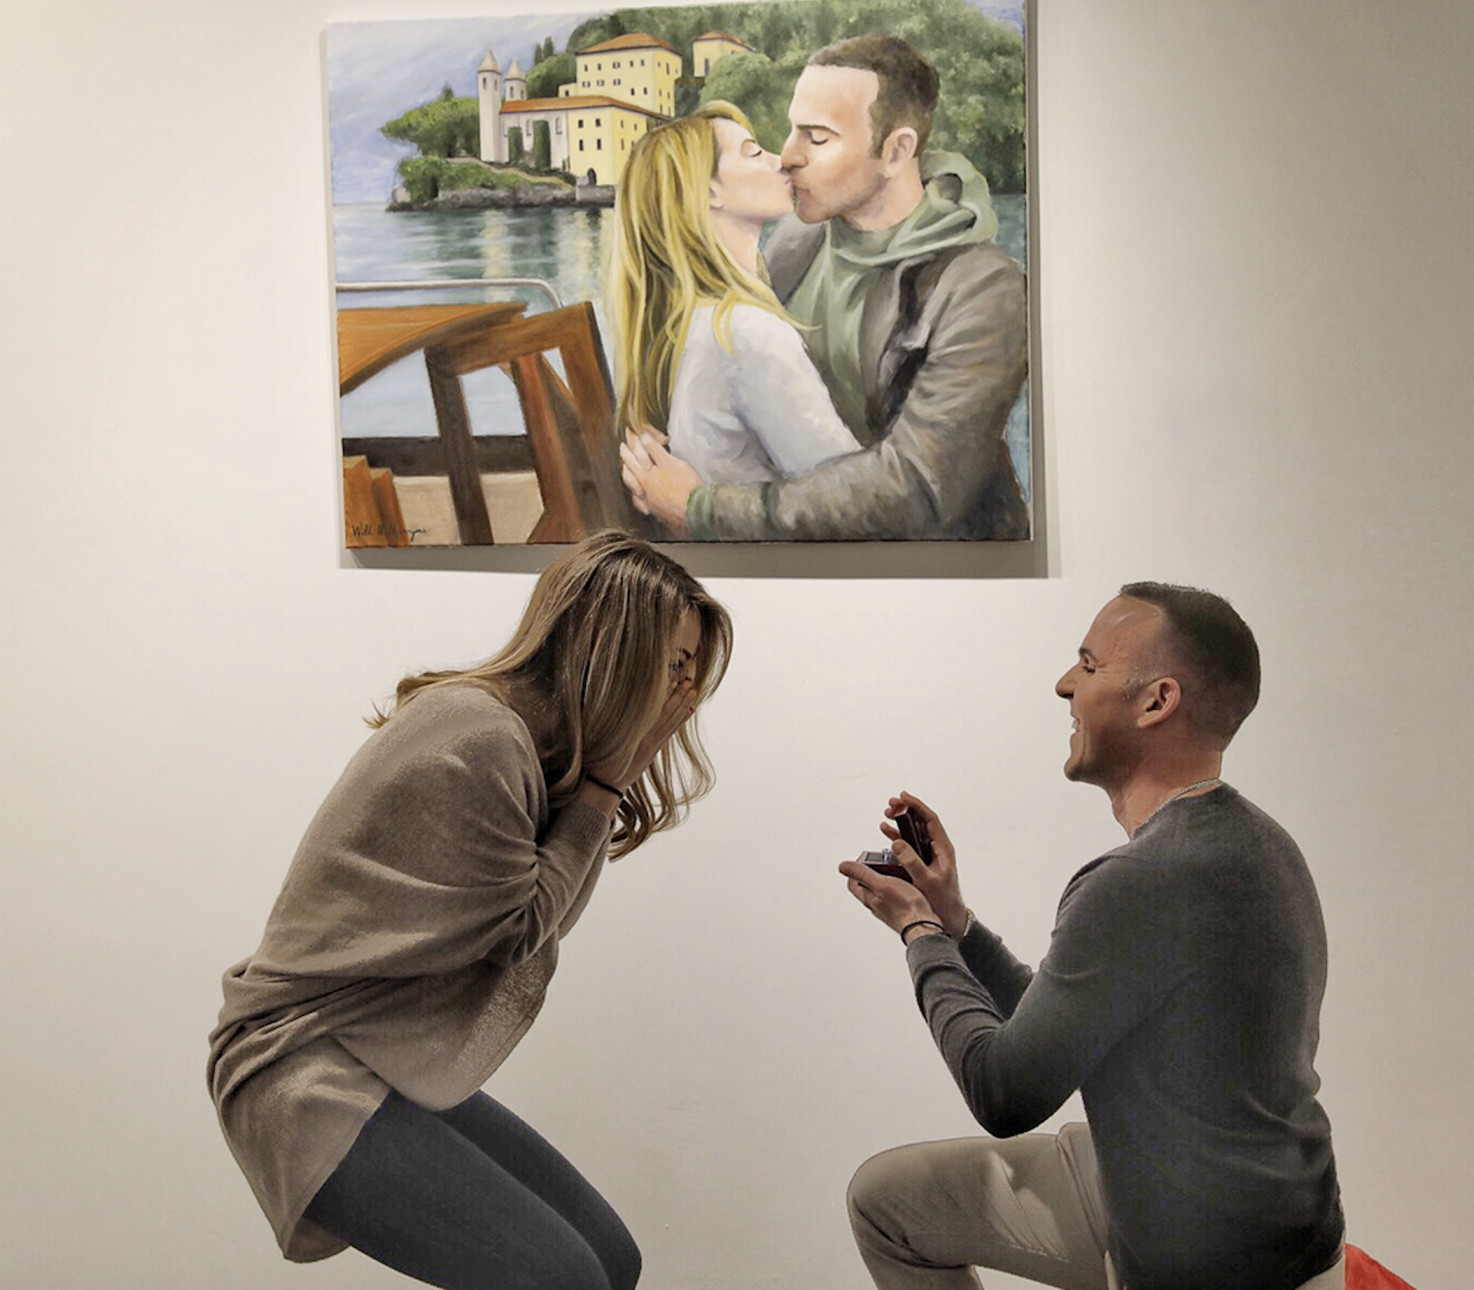 The Most Unique Gift for Valentine's Day | Couple Portrait Paintings